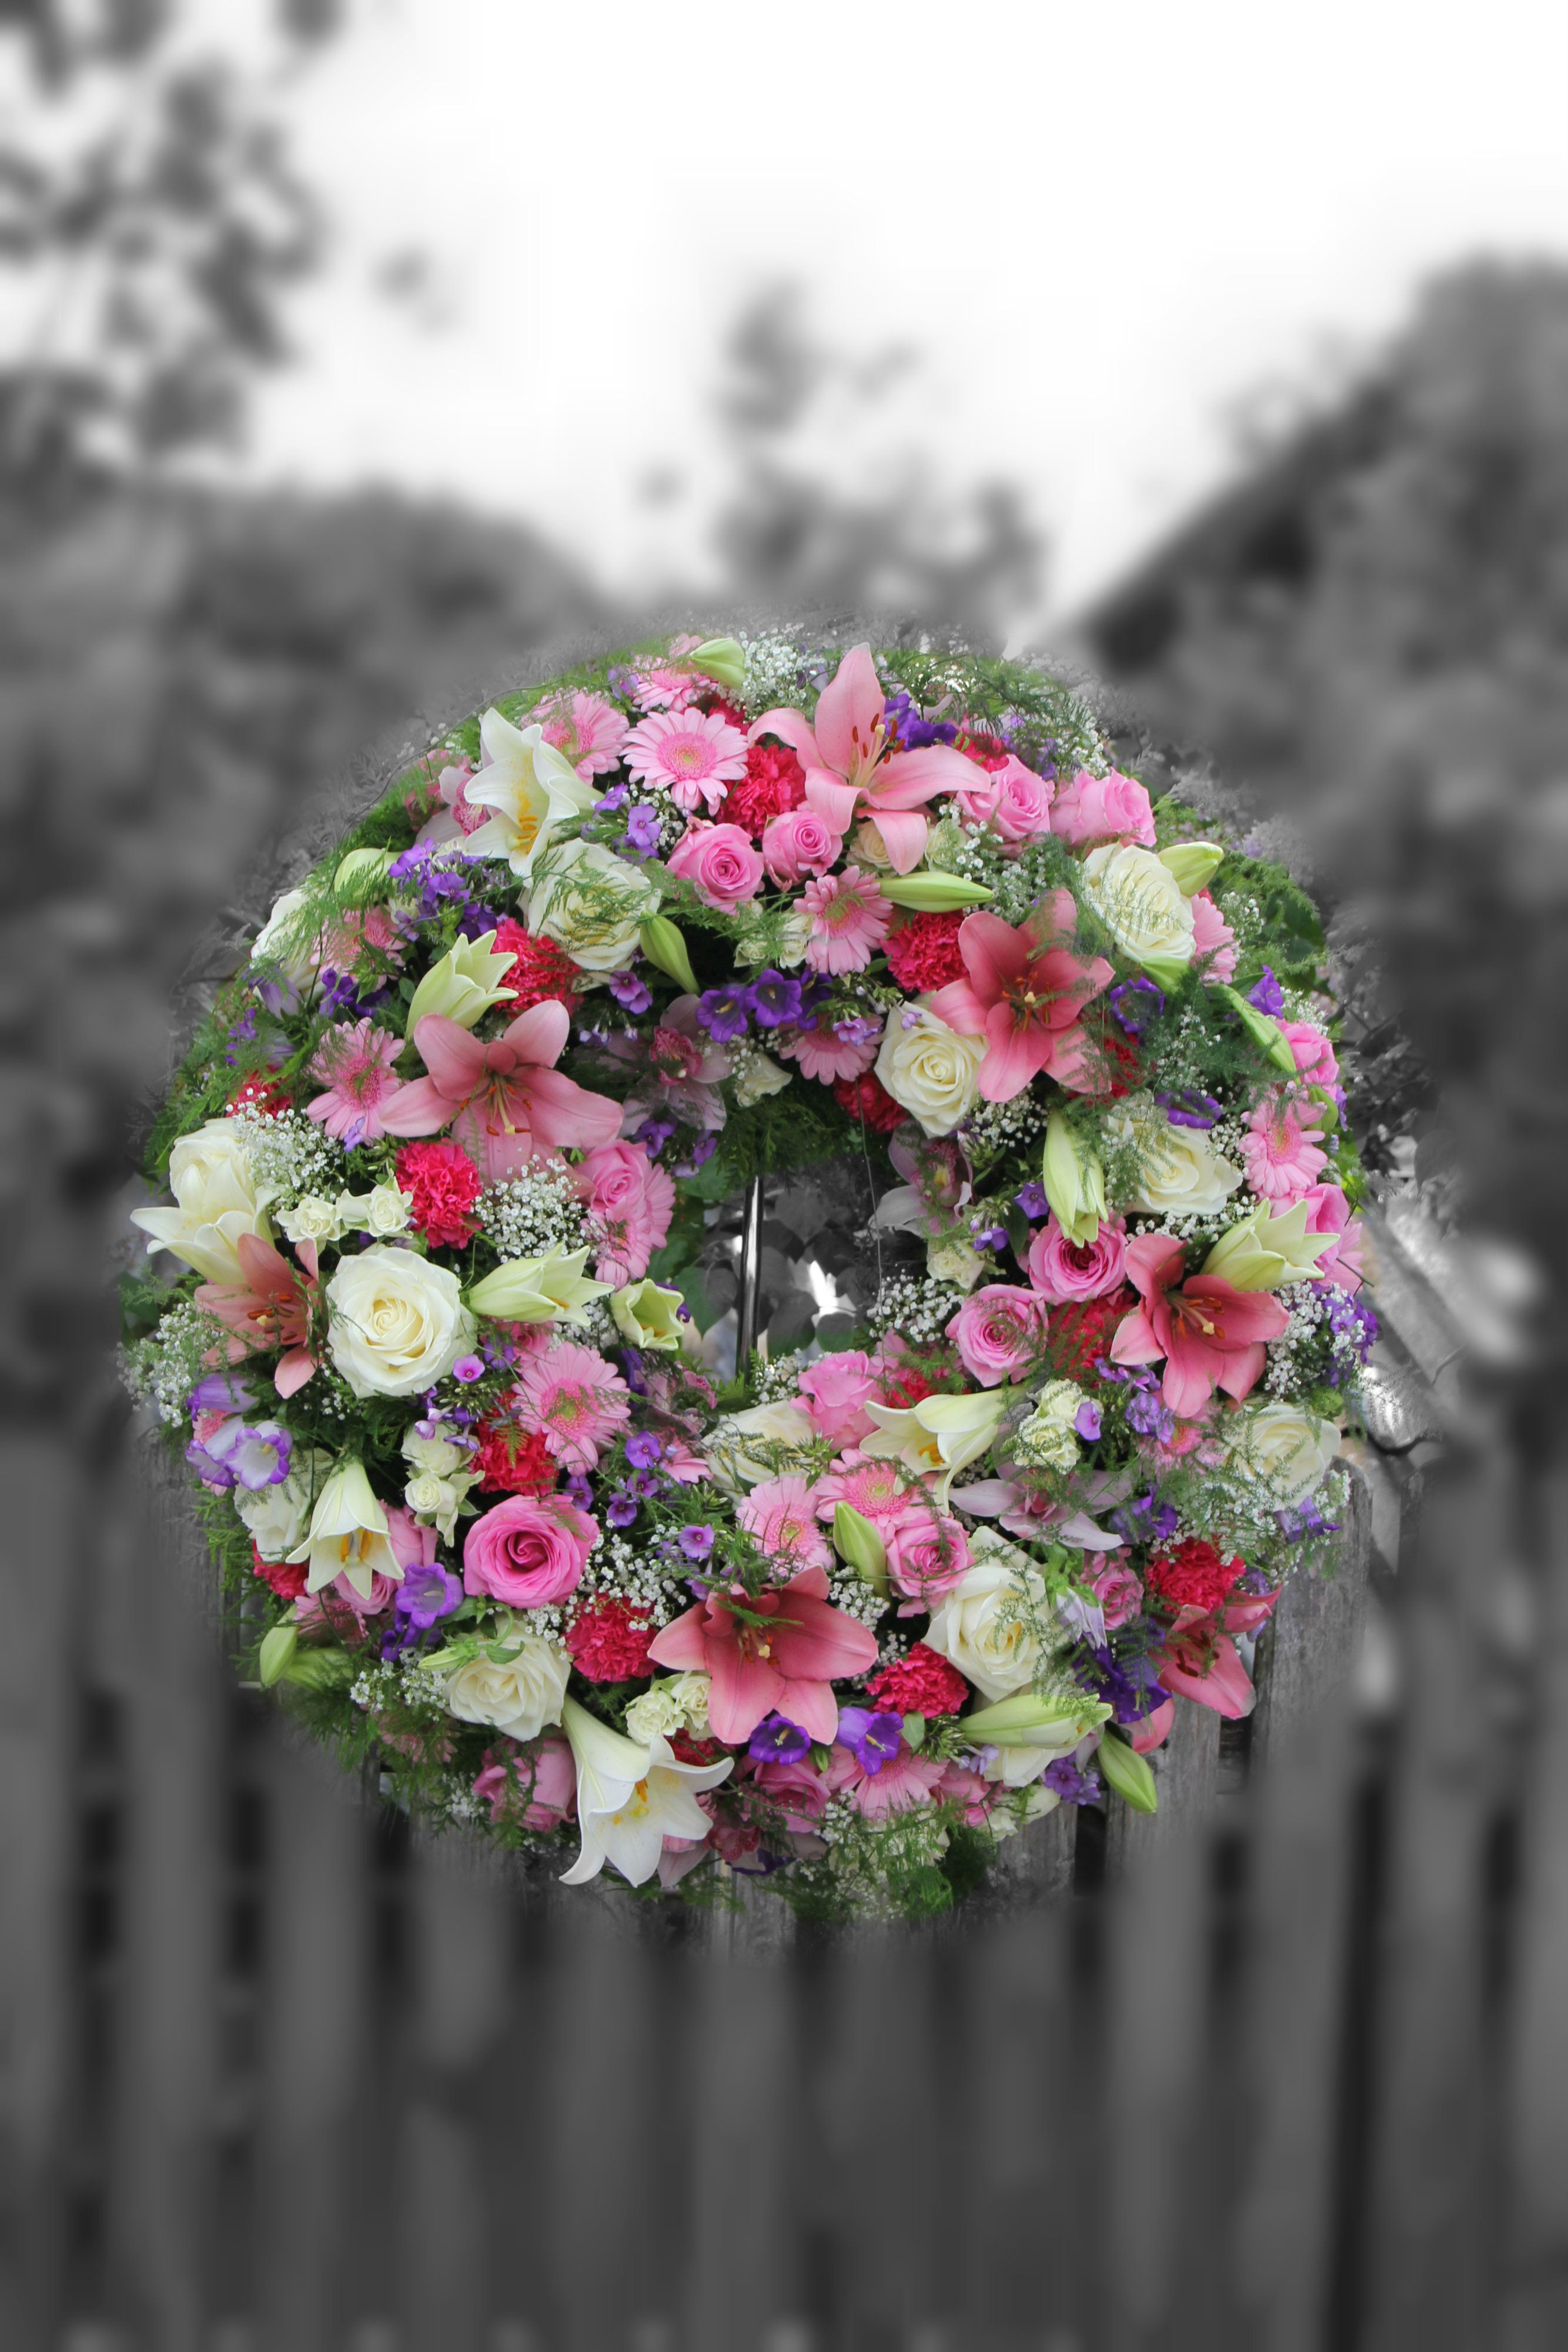 Photo of Funeral wreath in pink white with lilies, roses, germini and other loving flowers …